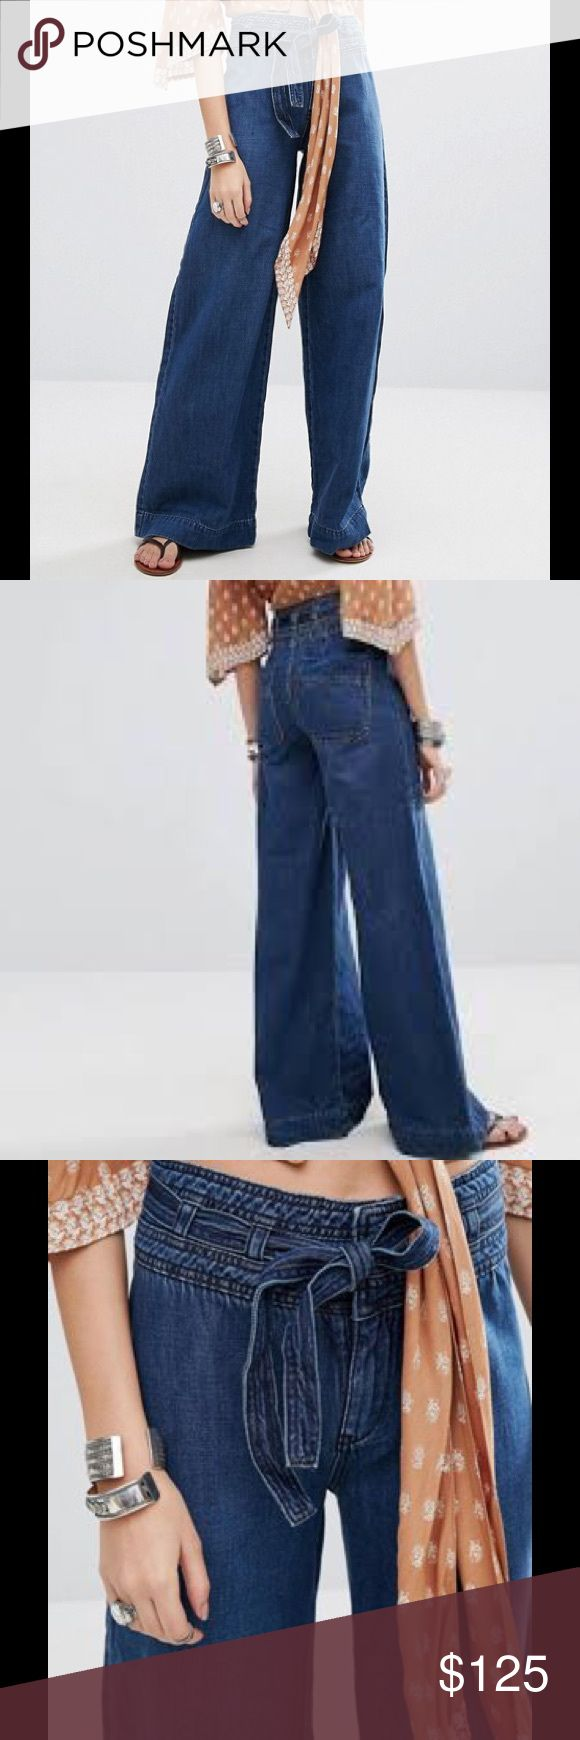 FREE PEOPLE Augusta Jeans Free People mishmash color and prints across an inspired collection of free-flowing maxi dresses, super-soft jersey and leather ankle boots. These amazing jeans feature: Non-stretch denim, High-rise waist, Belt tie, Concealed fly, Functional back pockets, Wide leg, Regular fit - true to size, Machine wash, 100% Cotton Color – Maytal Blue Free People Jeans Flare & Wide Leg